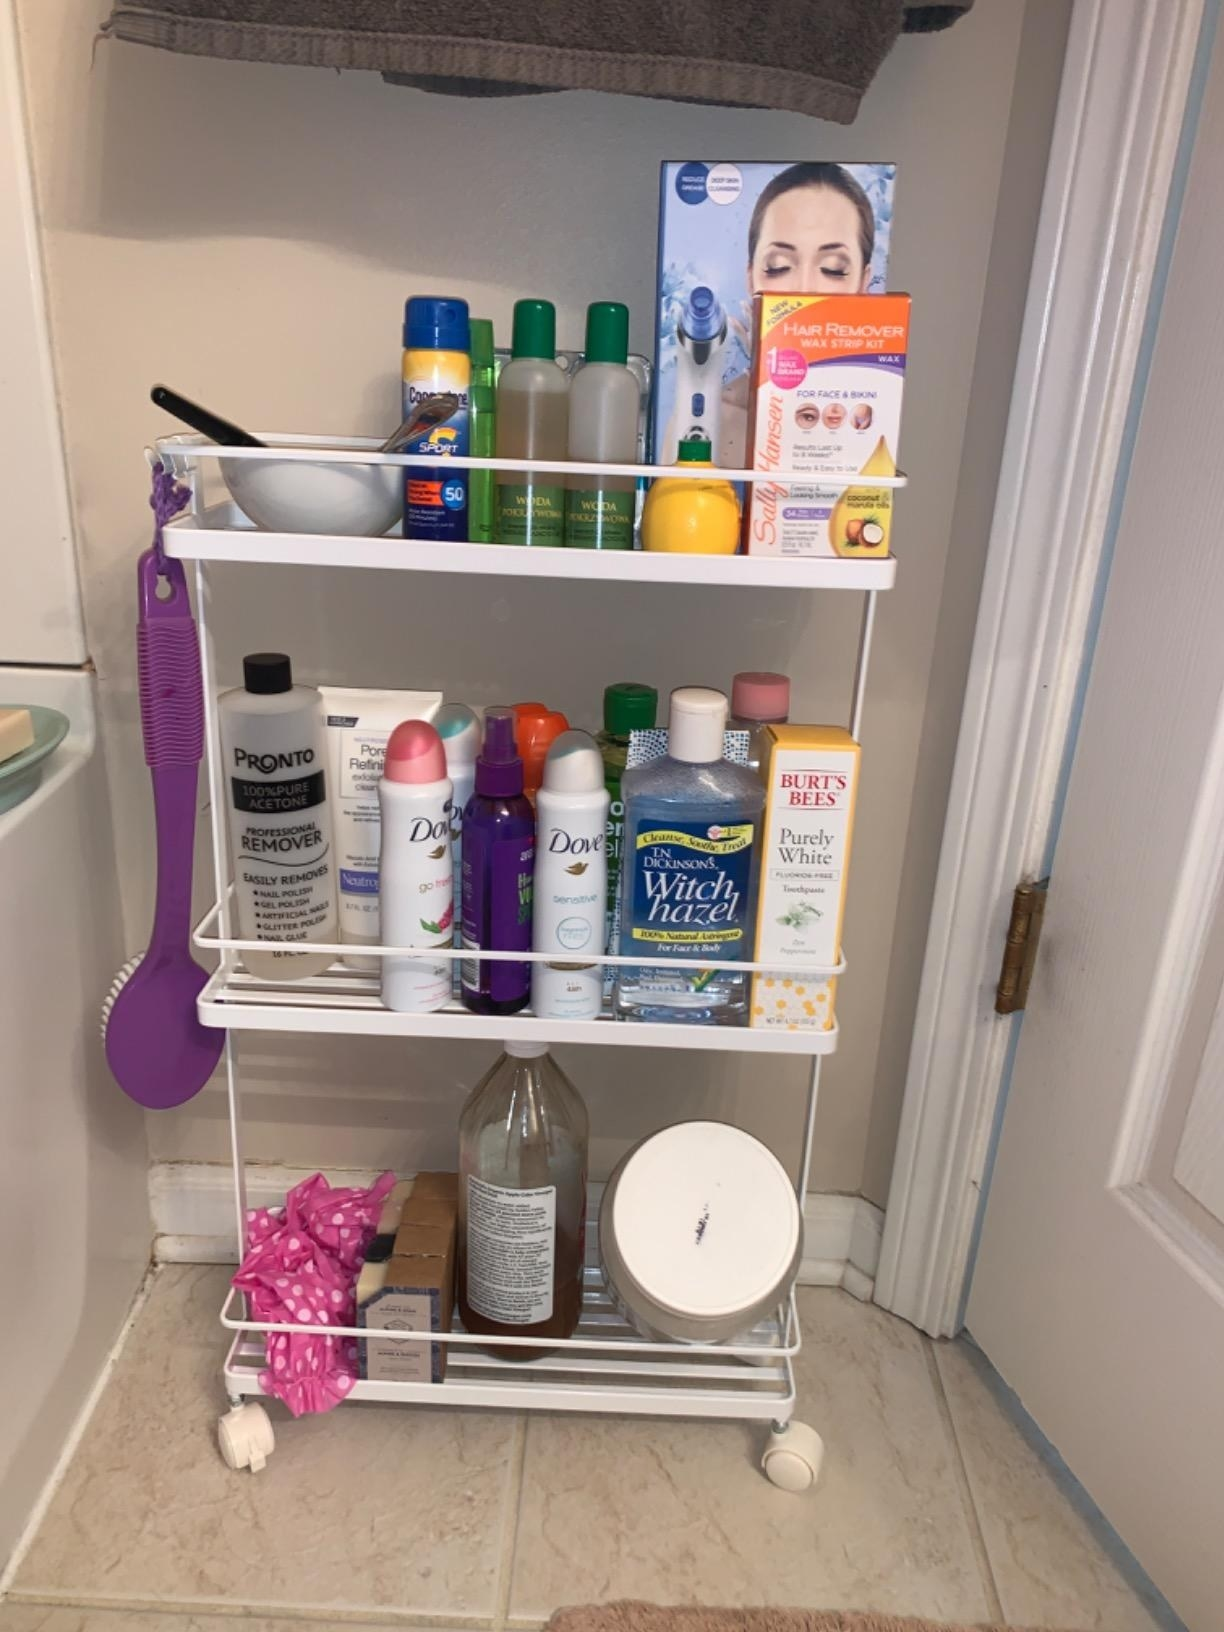 The narrow storage cart on wheels with three shelves holding bathroom essentials